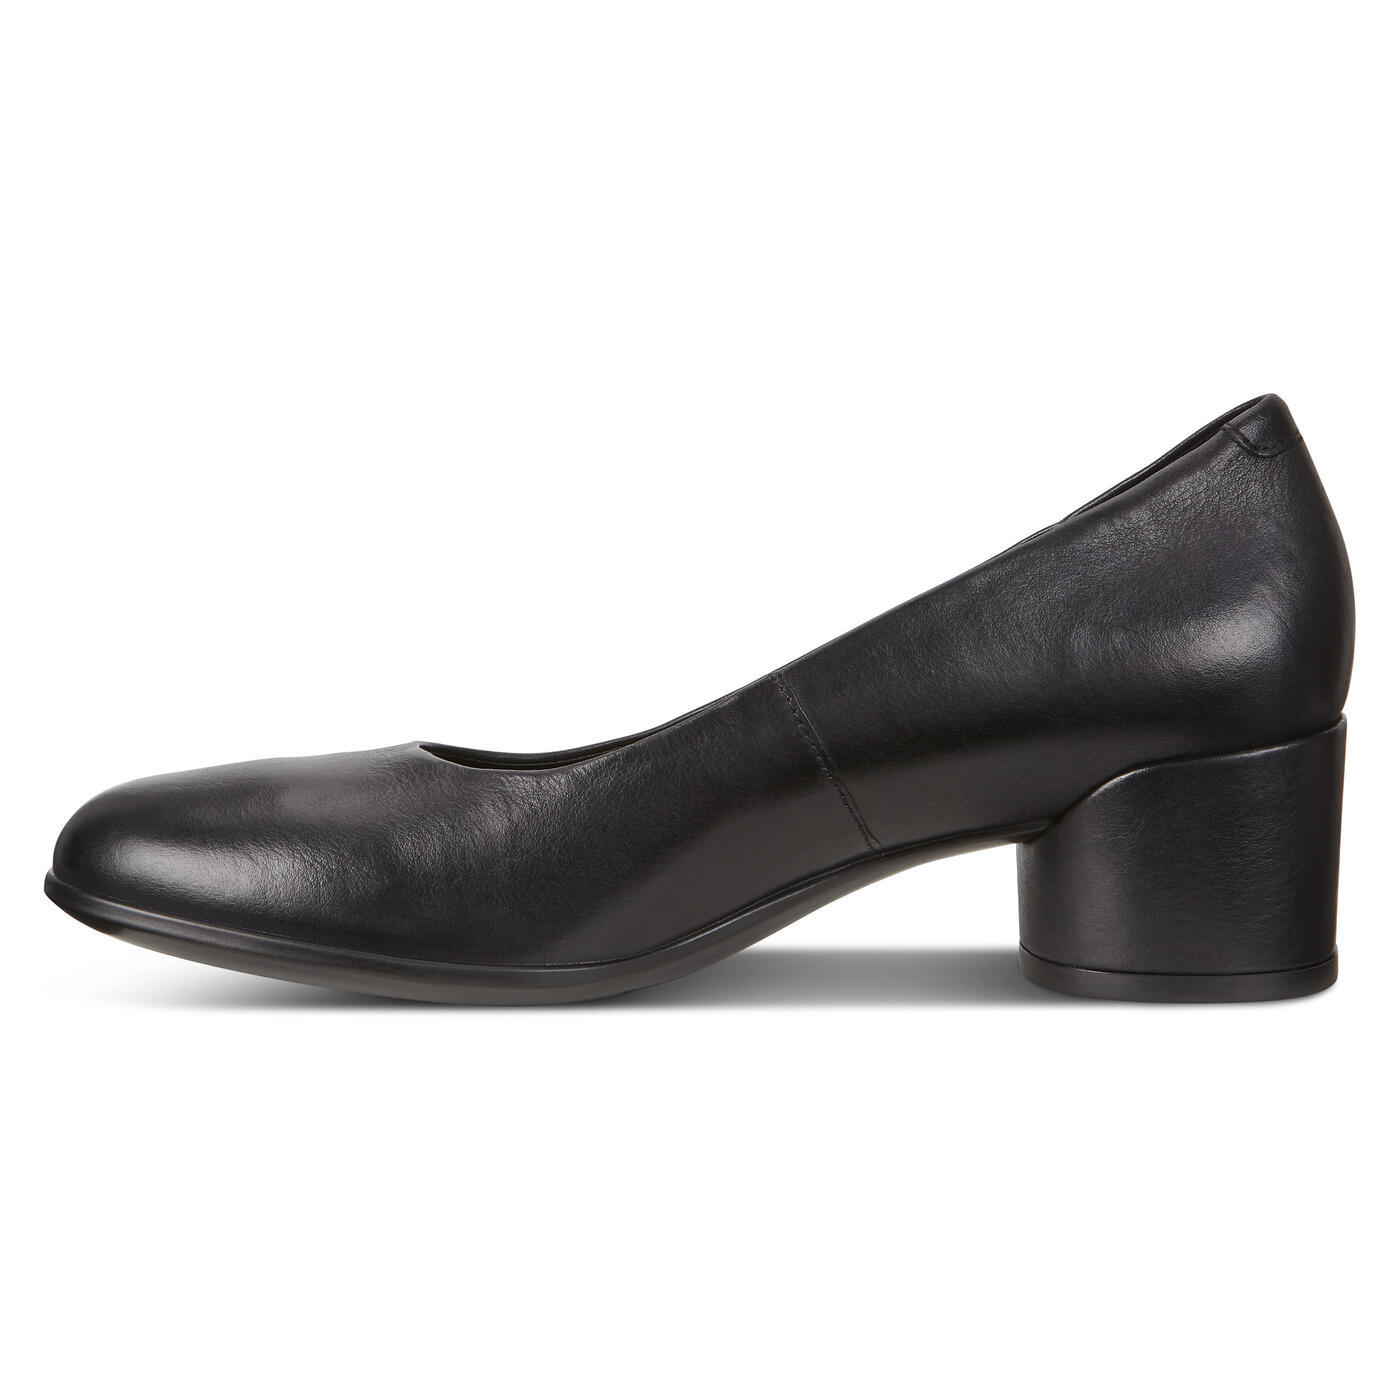 ECCO SHAPE 35 MOD BLOCK Women's Pump